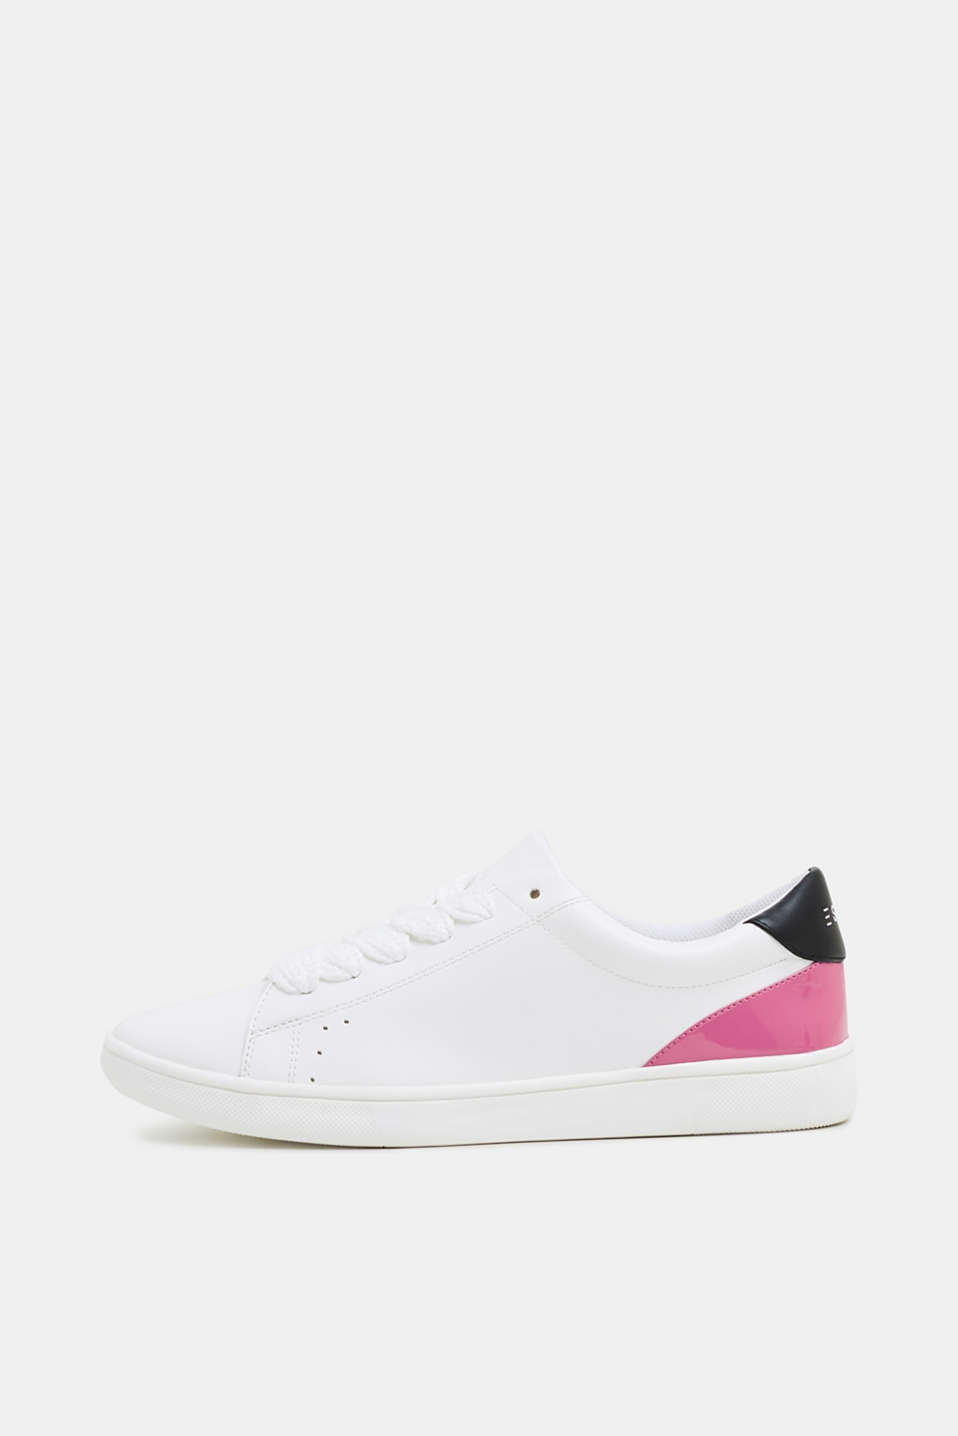 Esprit - Trendy trainers with patent leather detail, in faux leather